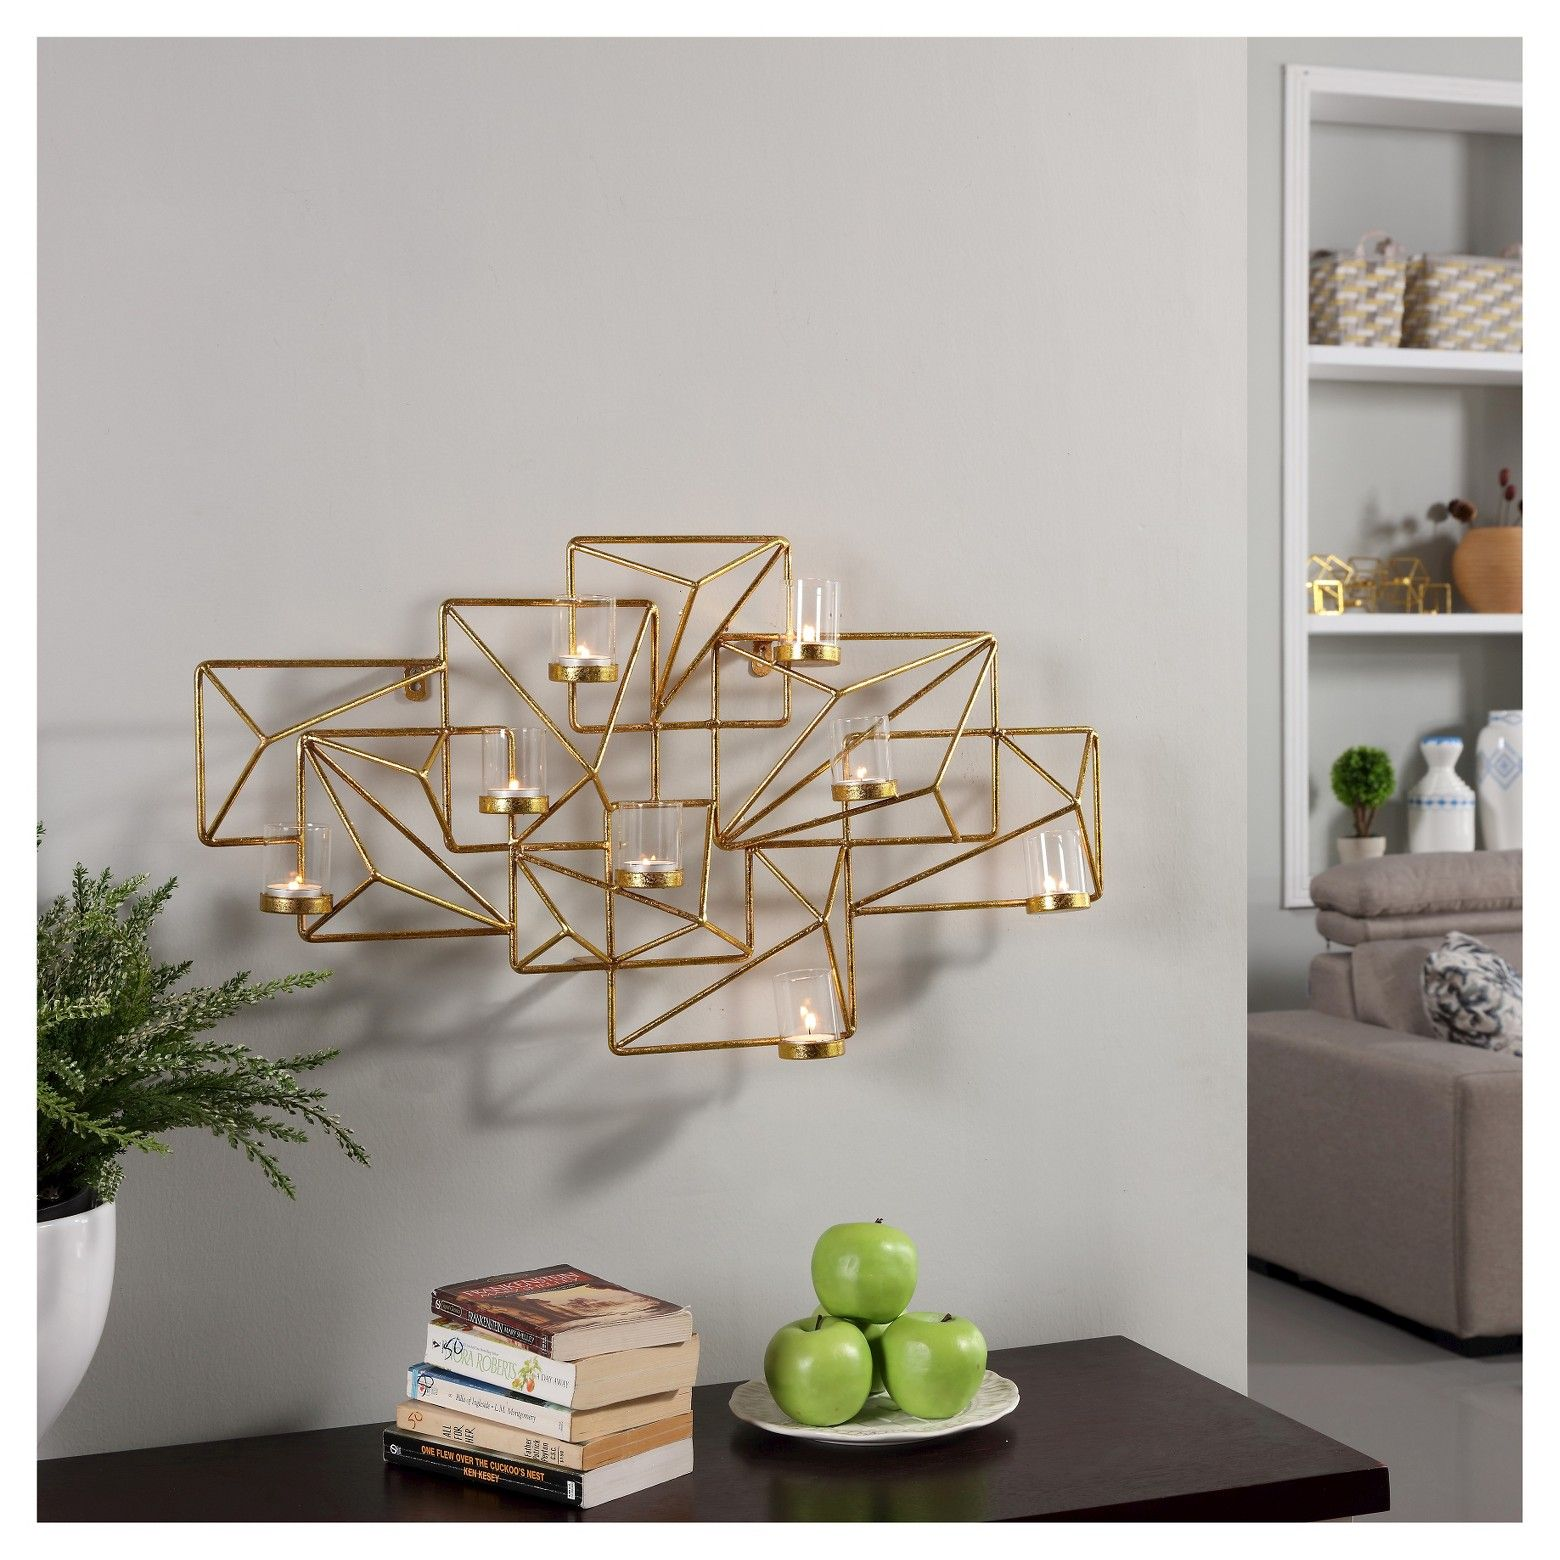 Danya b sparkling gold geometric candle wall sconce is like a piece of art for